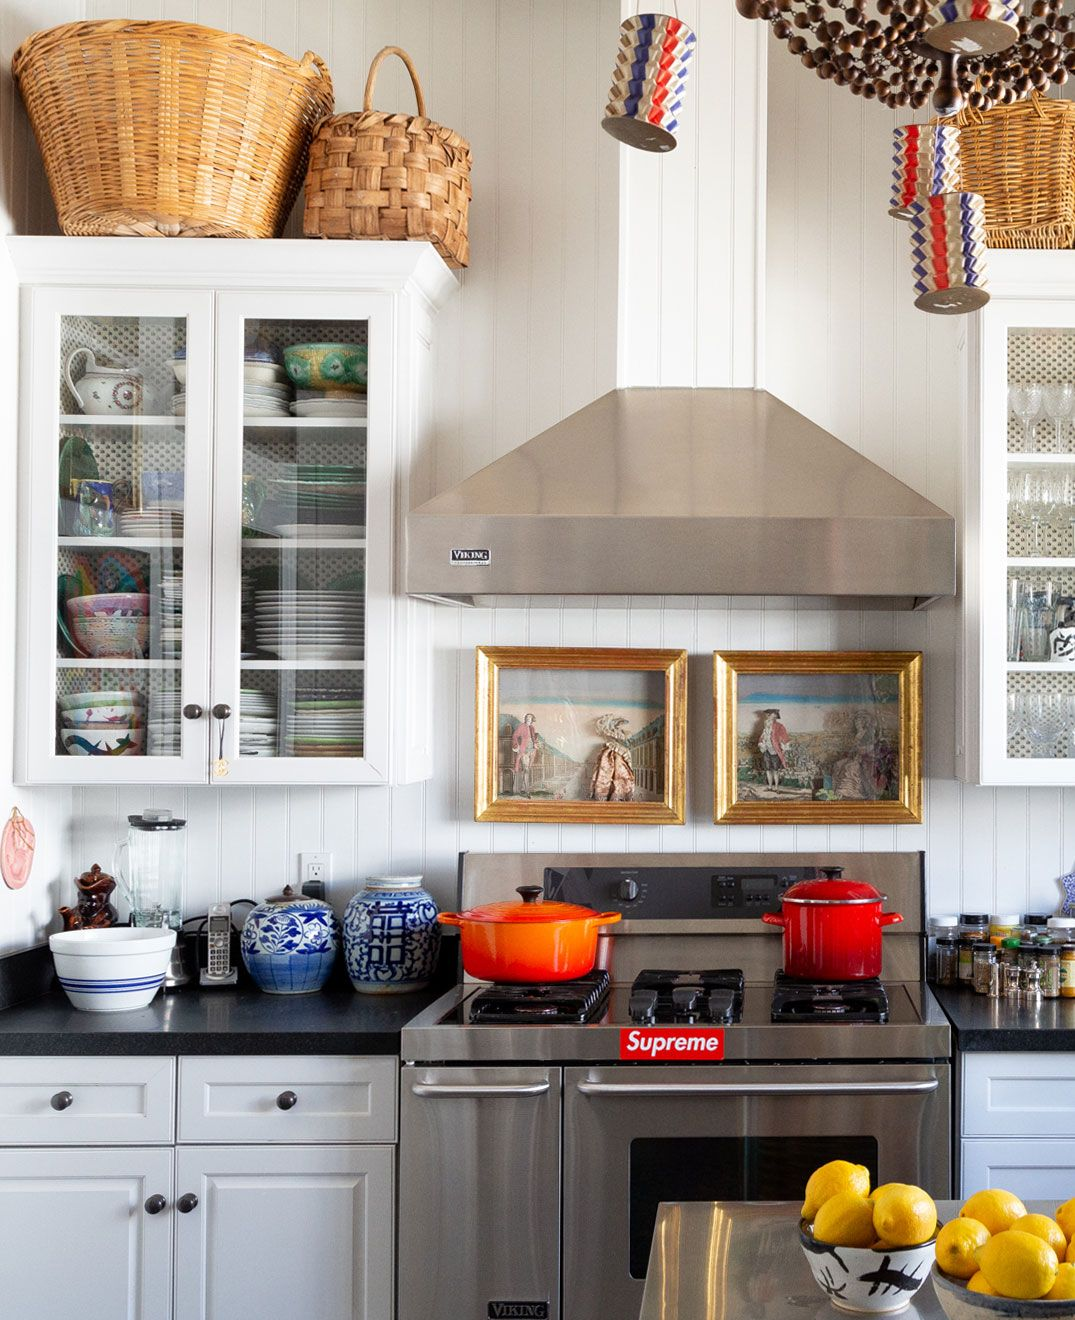 Electric Eccentric Eclectic Sfgirlbybay Eclectic Kitchen